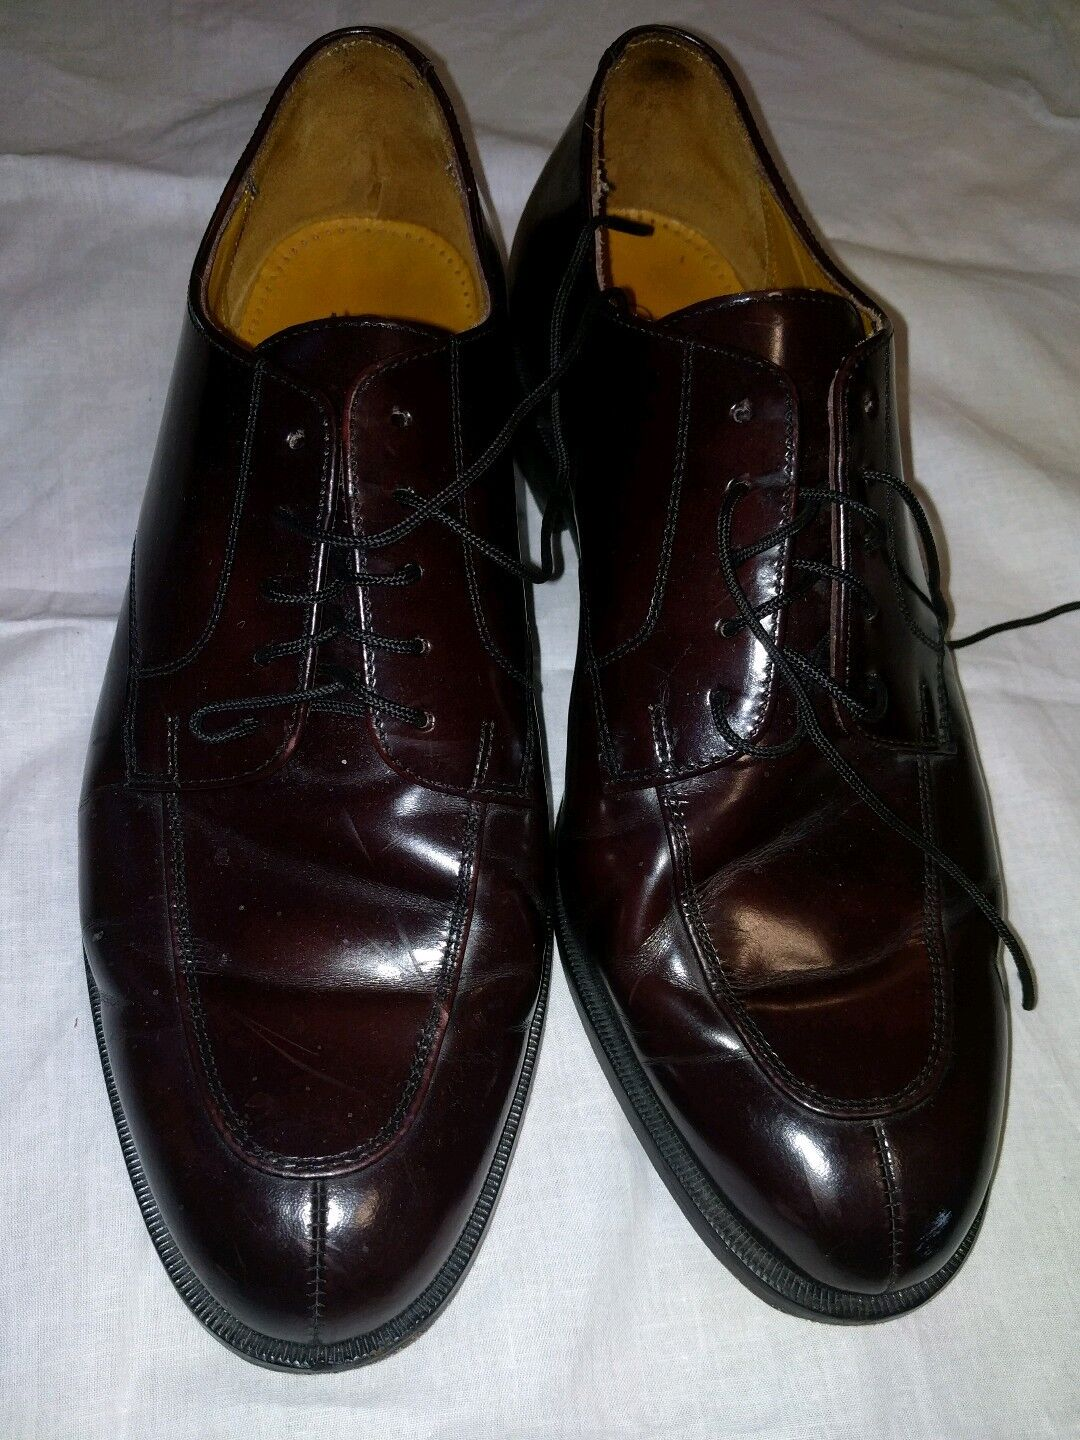 Cole Haan burgundy oxfords, 10 D, vguc, sharp